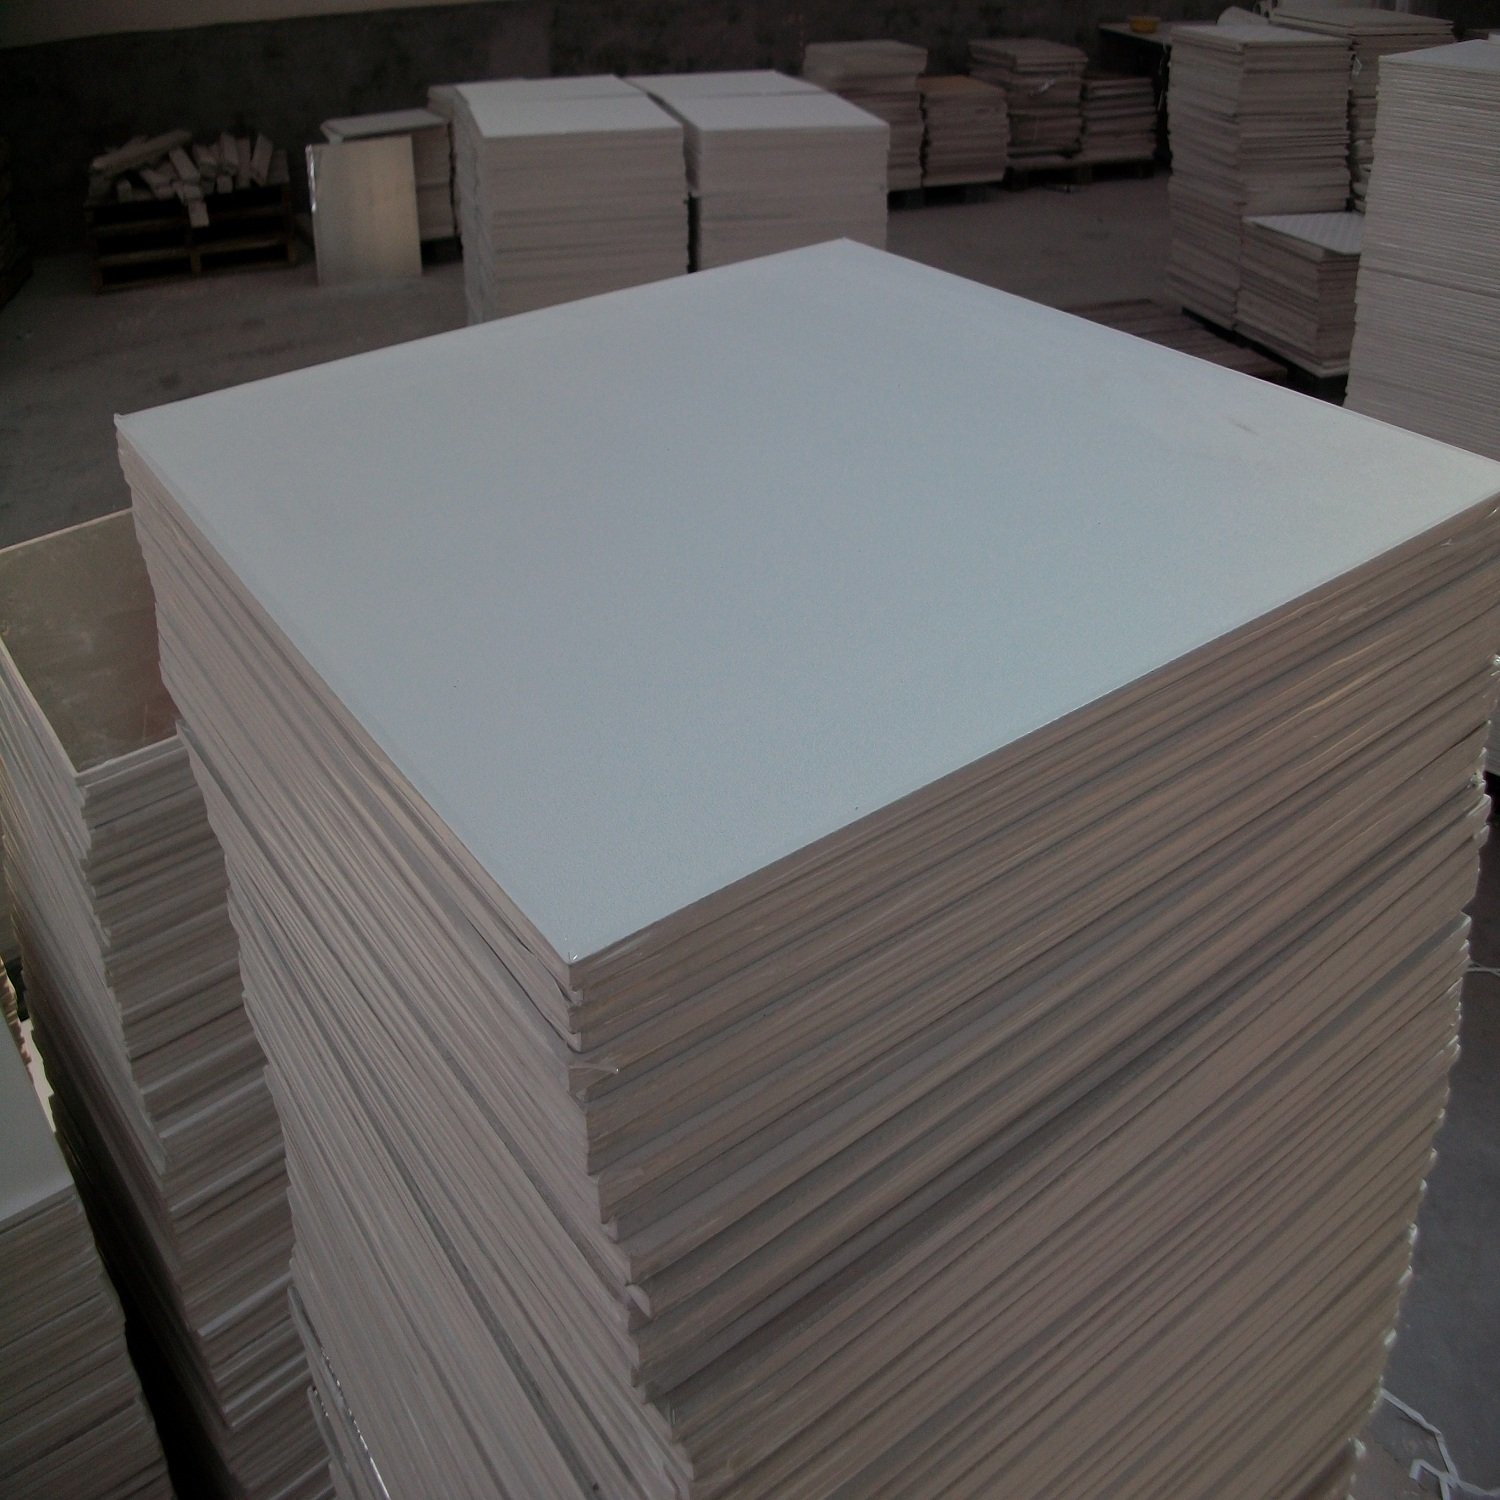 China good quality pvc gypsum ceiling tiles photos pictures made good quality pvc gypsum ceiling tiles dailygadgetfo Images